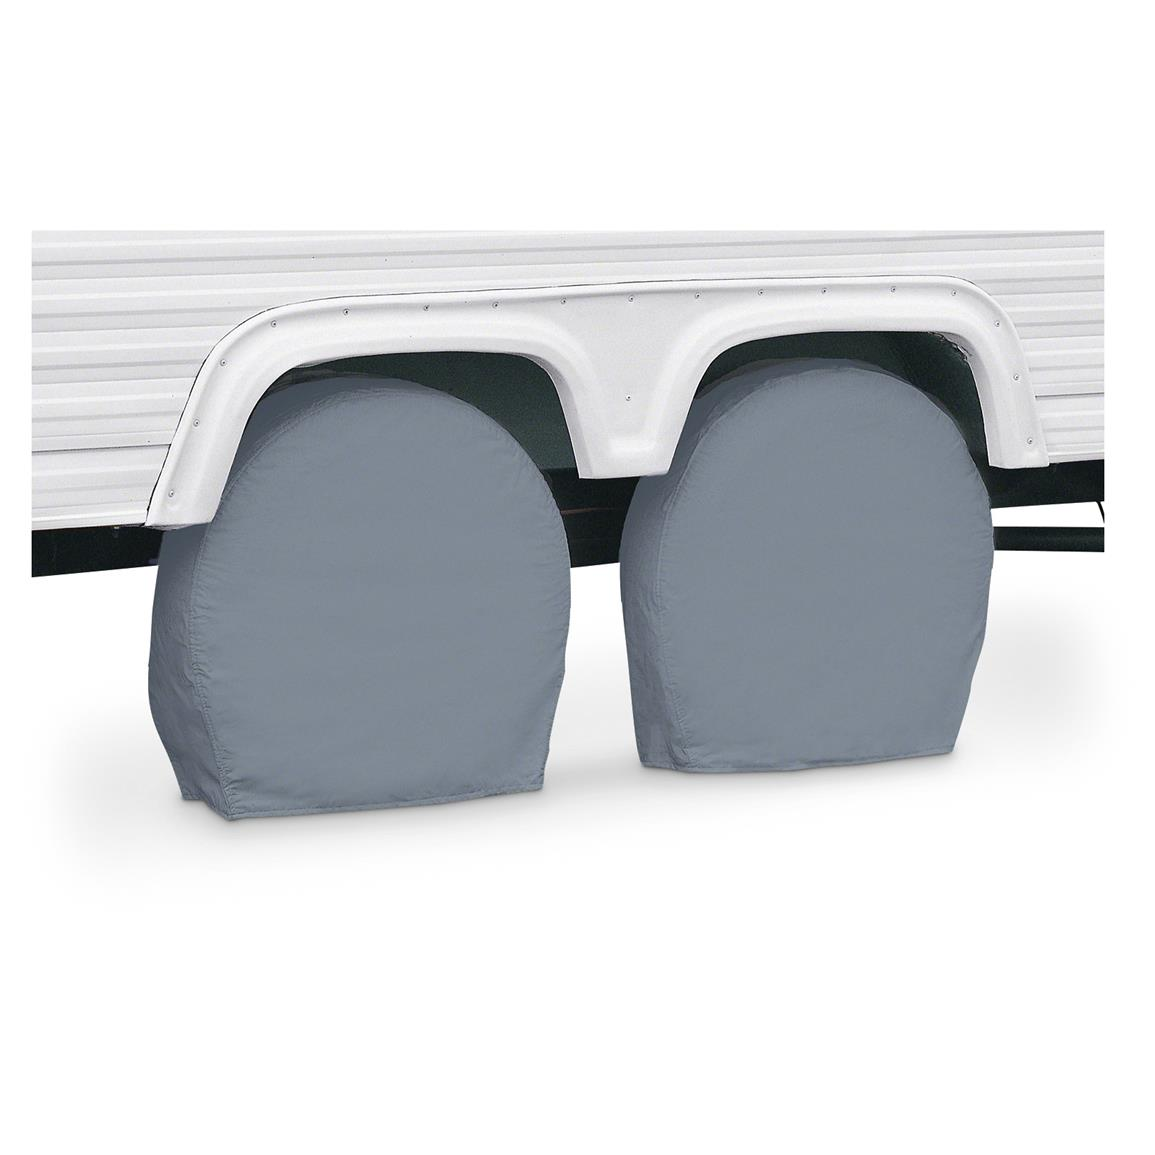 Classic Accessories RV Wheel Covers, 2 Pack, Gray